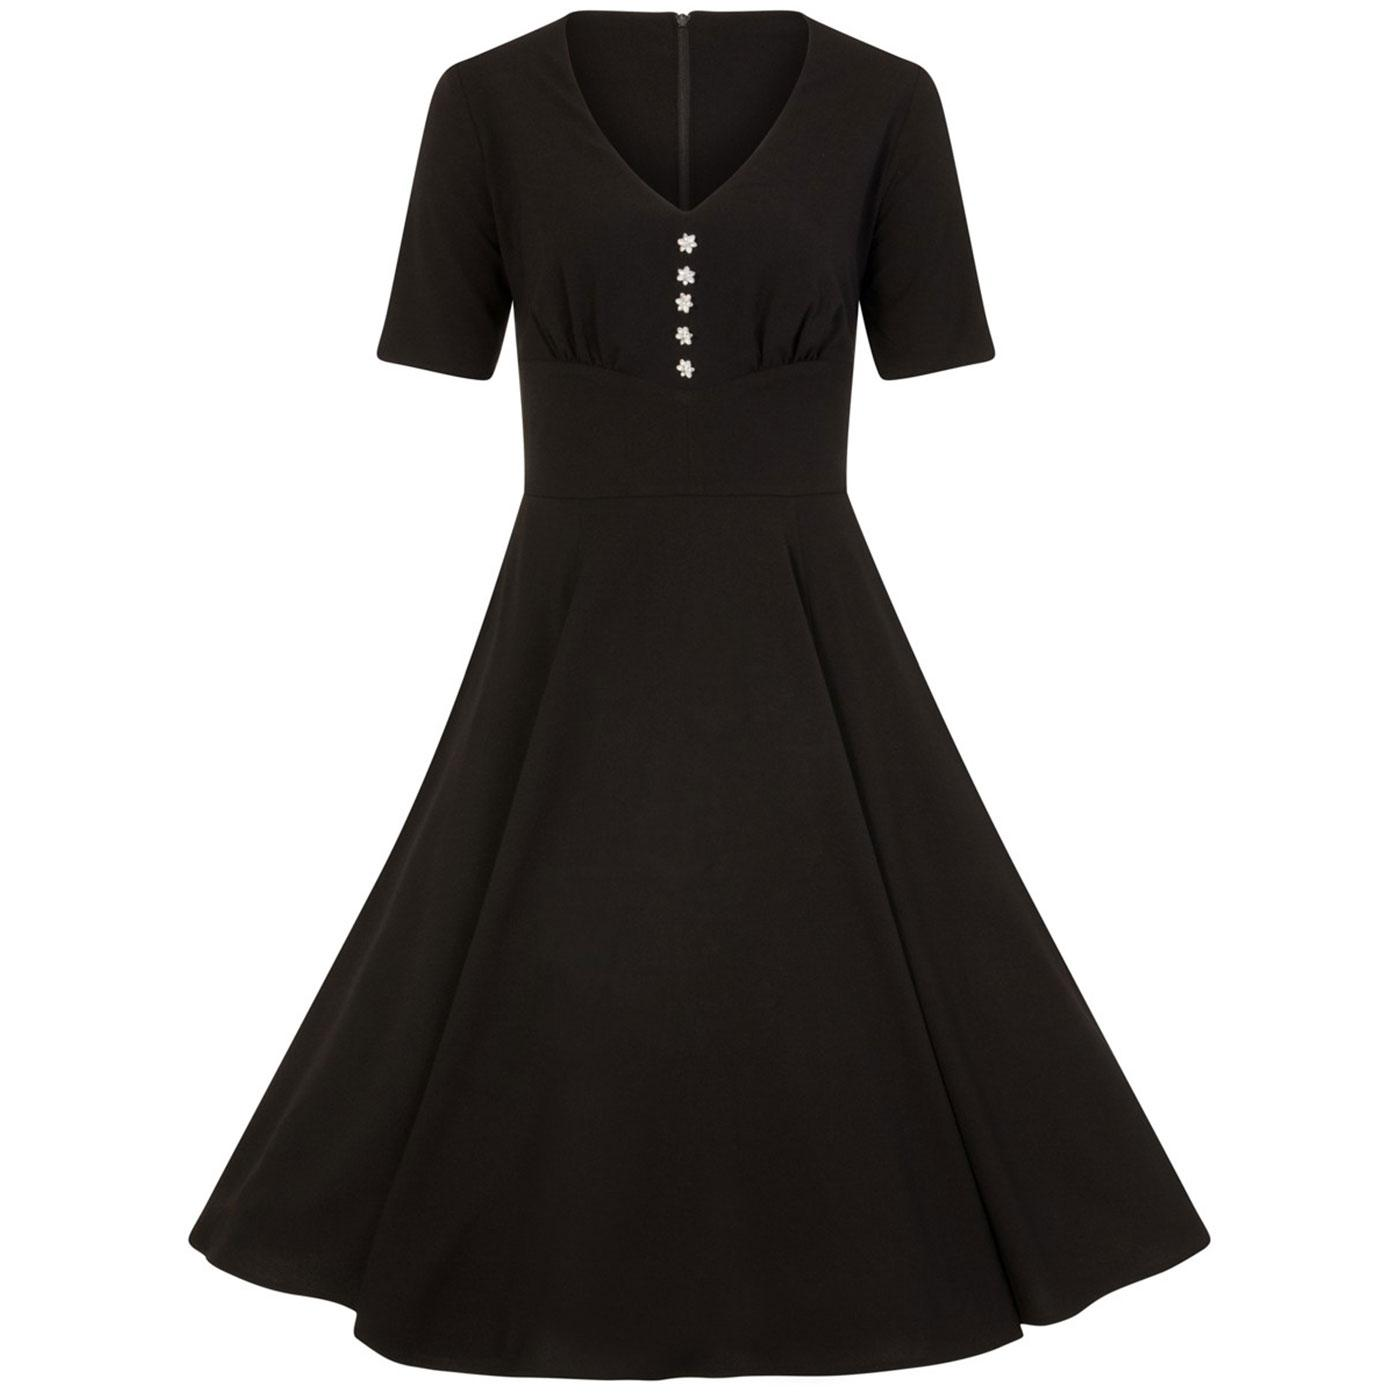 Mila HELL BUNNY 40s Vintage V-neck Dress in Black